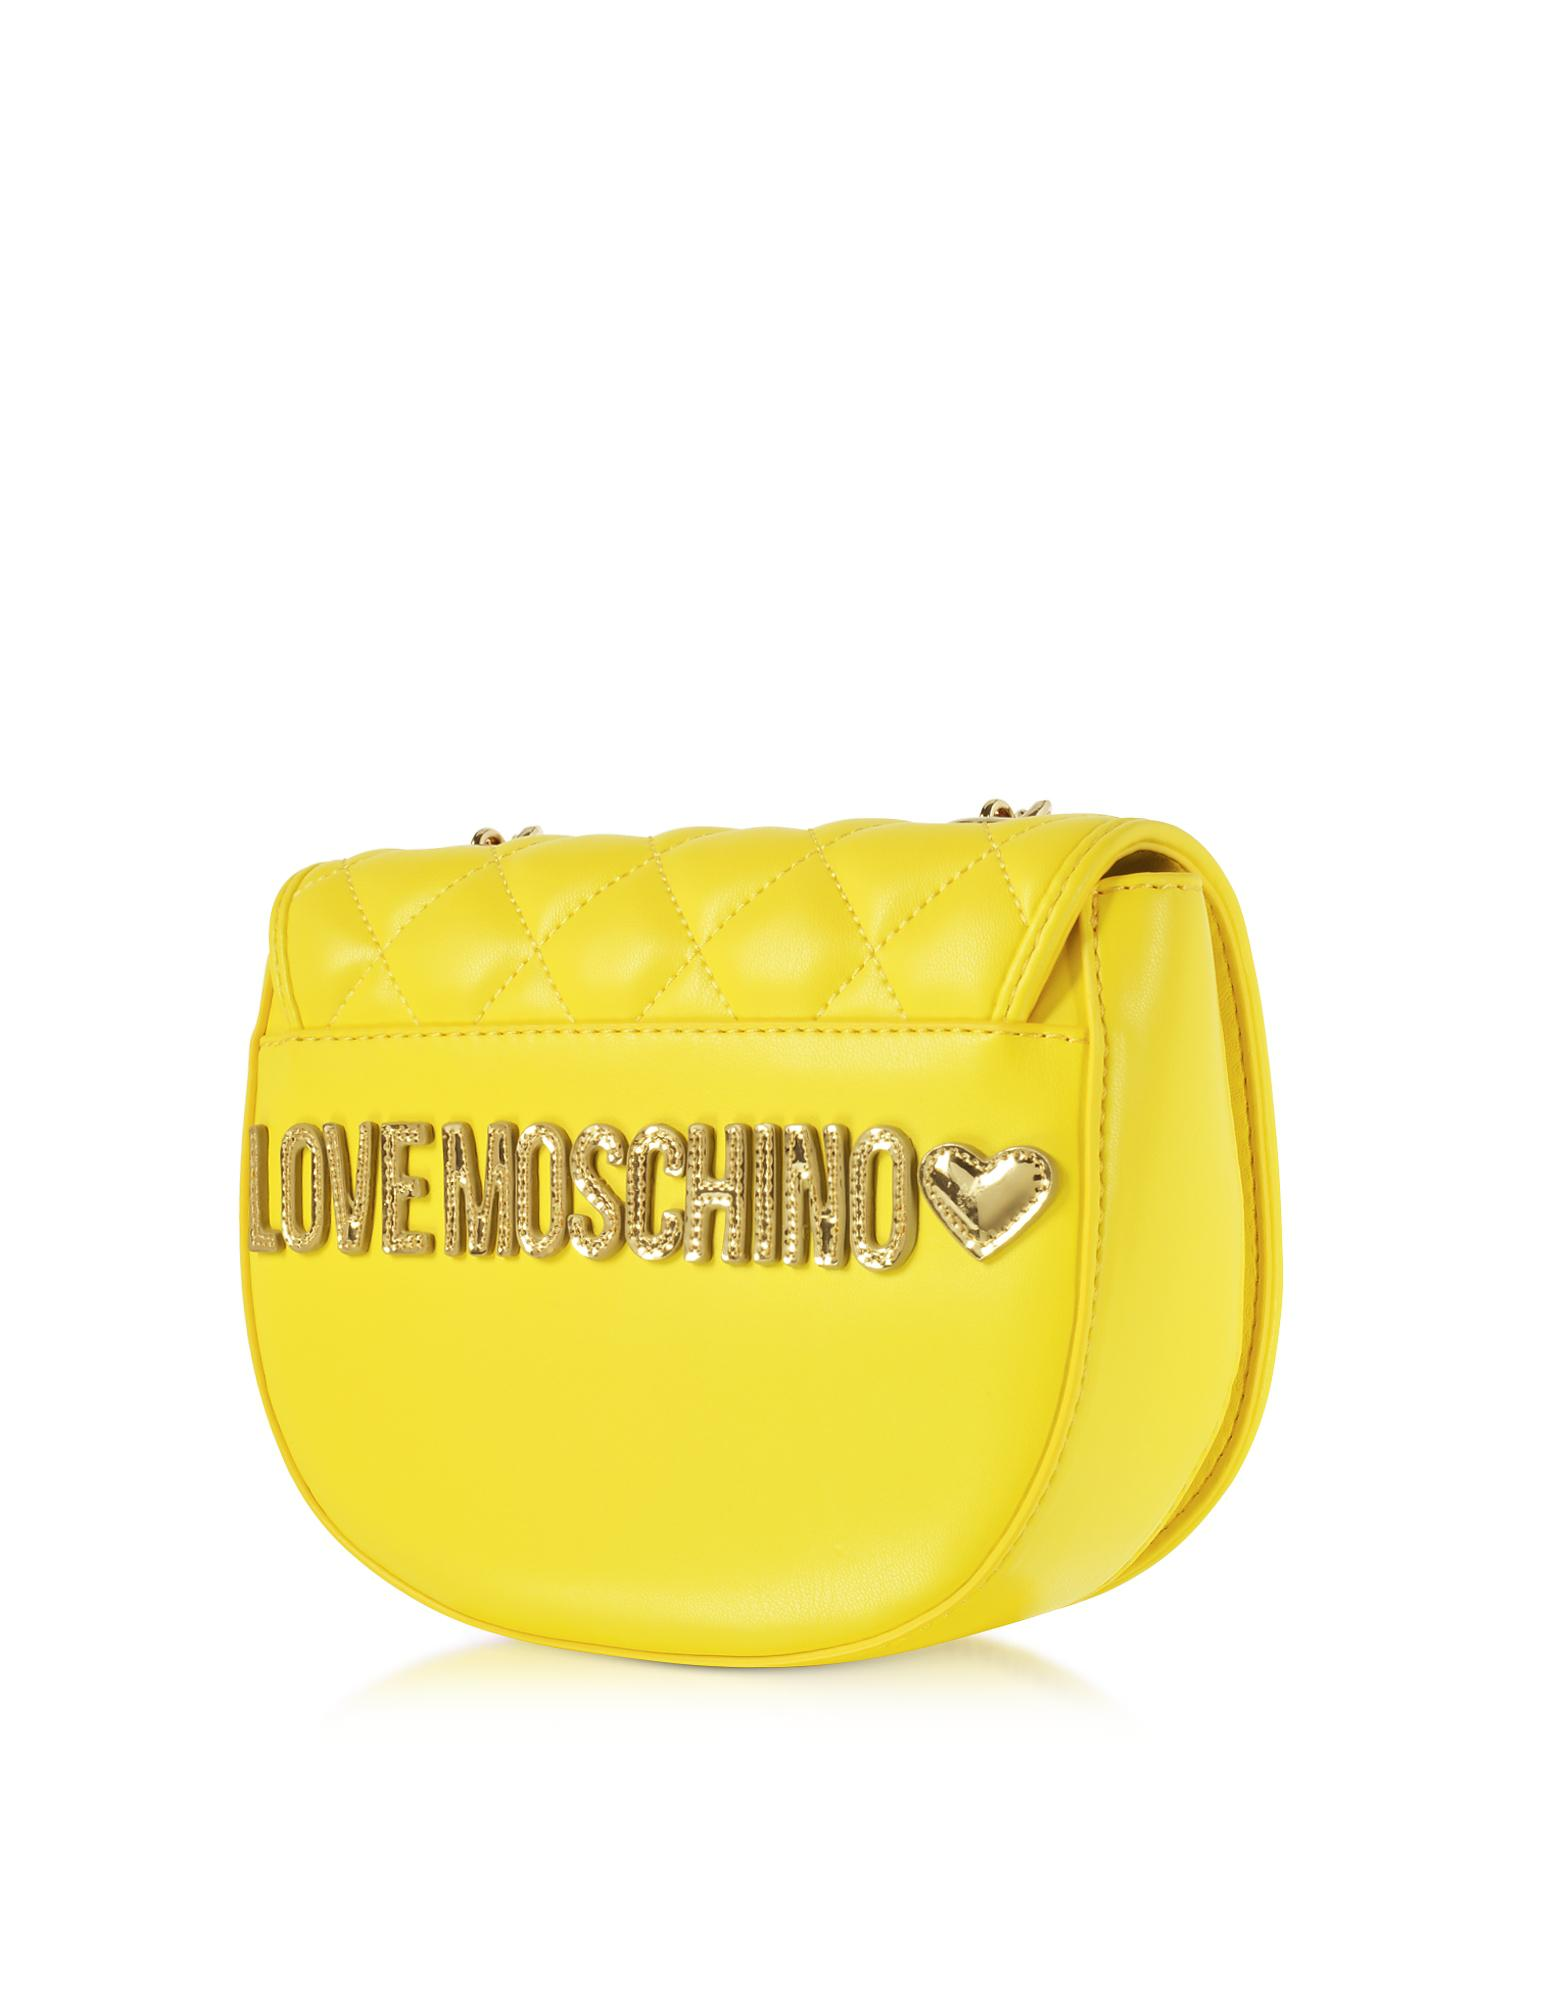 540ad8220389 Lyst - Love Moschino Yellow Superquilted Eco-leather Small Crossbody ...